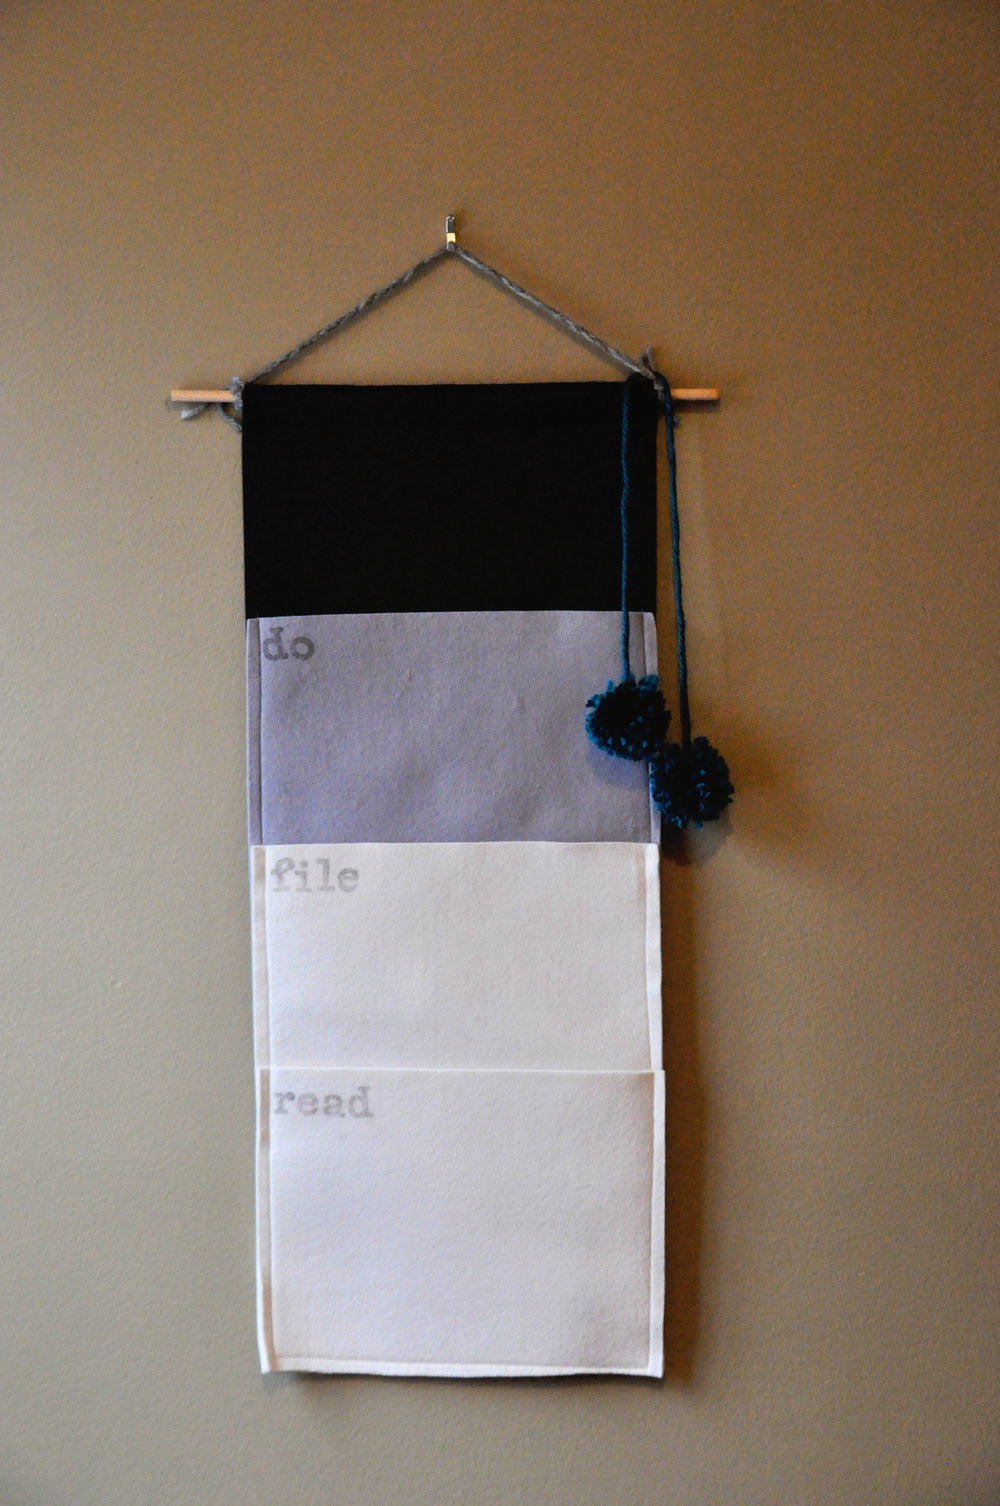 Here is my felt mail organizer with a cute little pom pom addition!